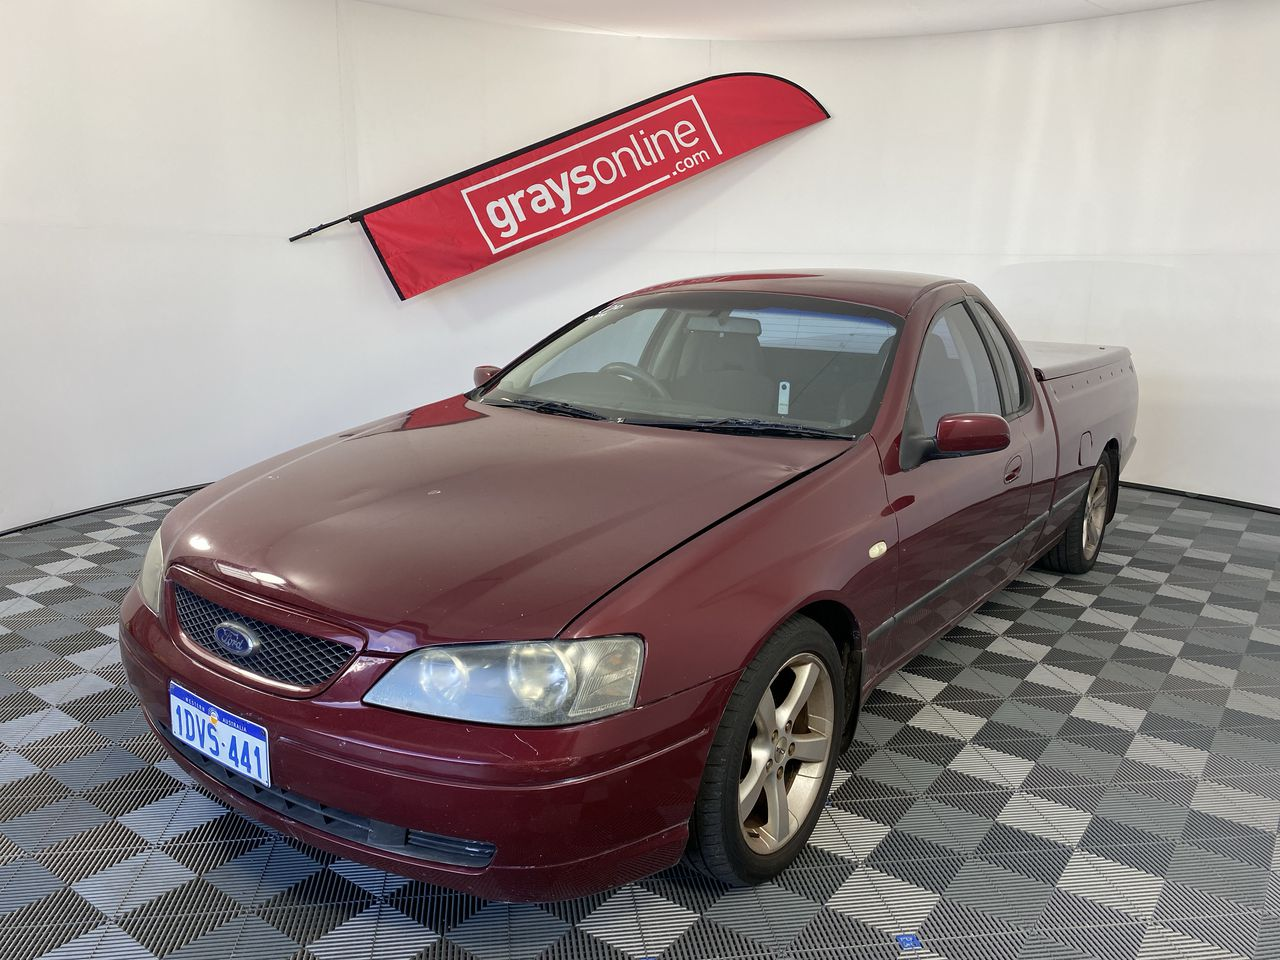 2002 Ford Falcon XR6 BA Automatic Ute(WOVR-Inspected)